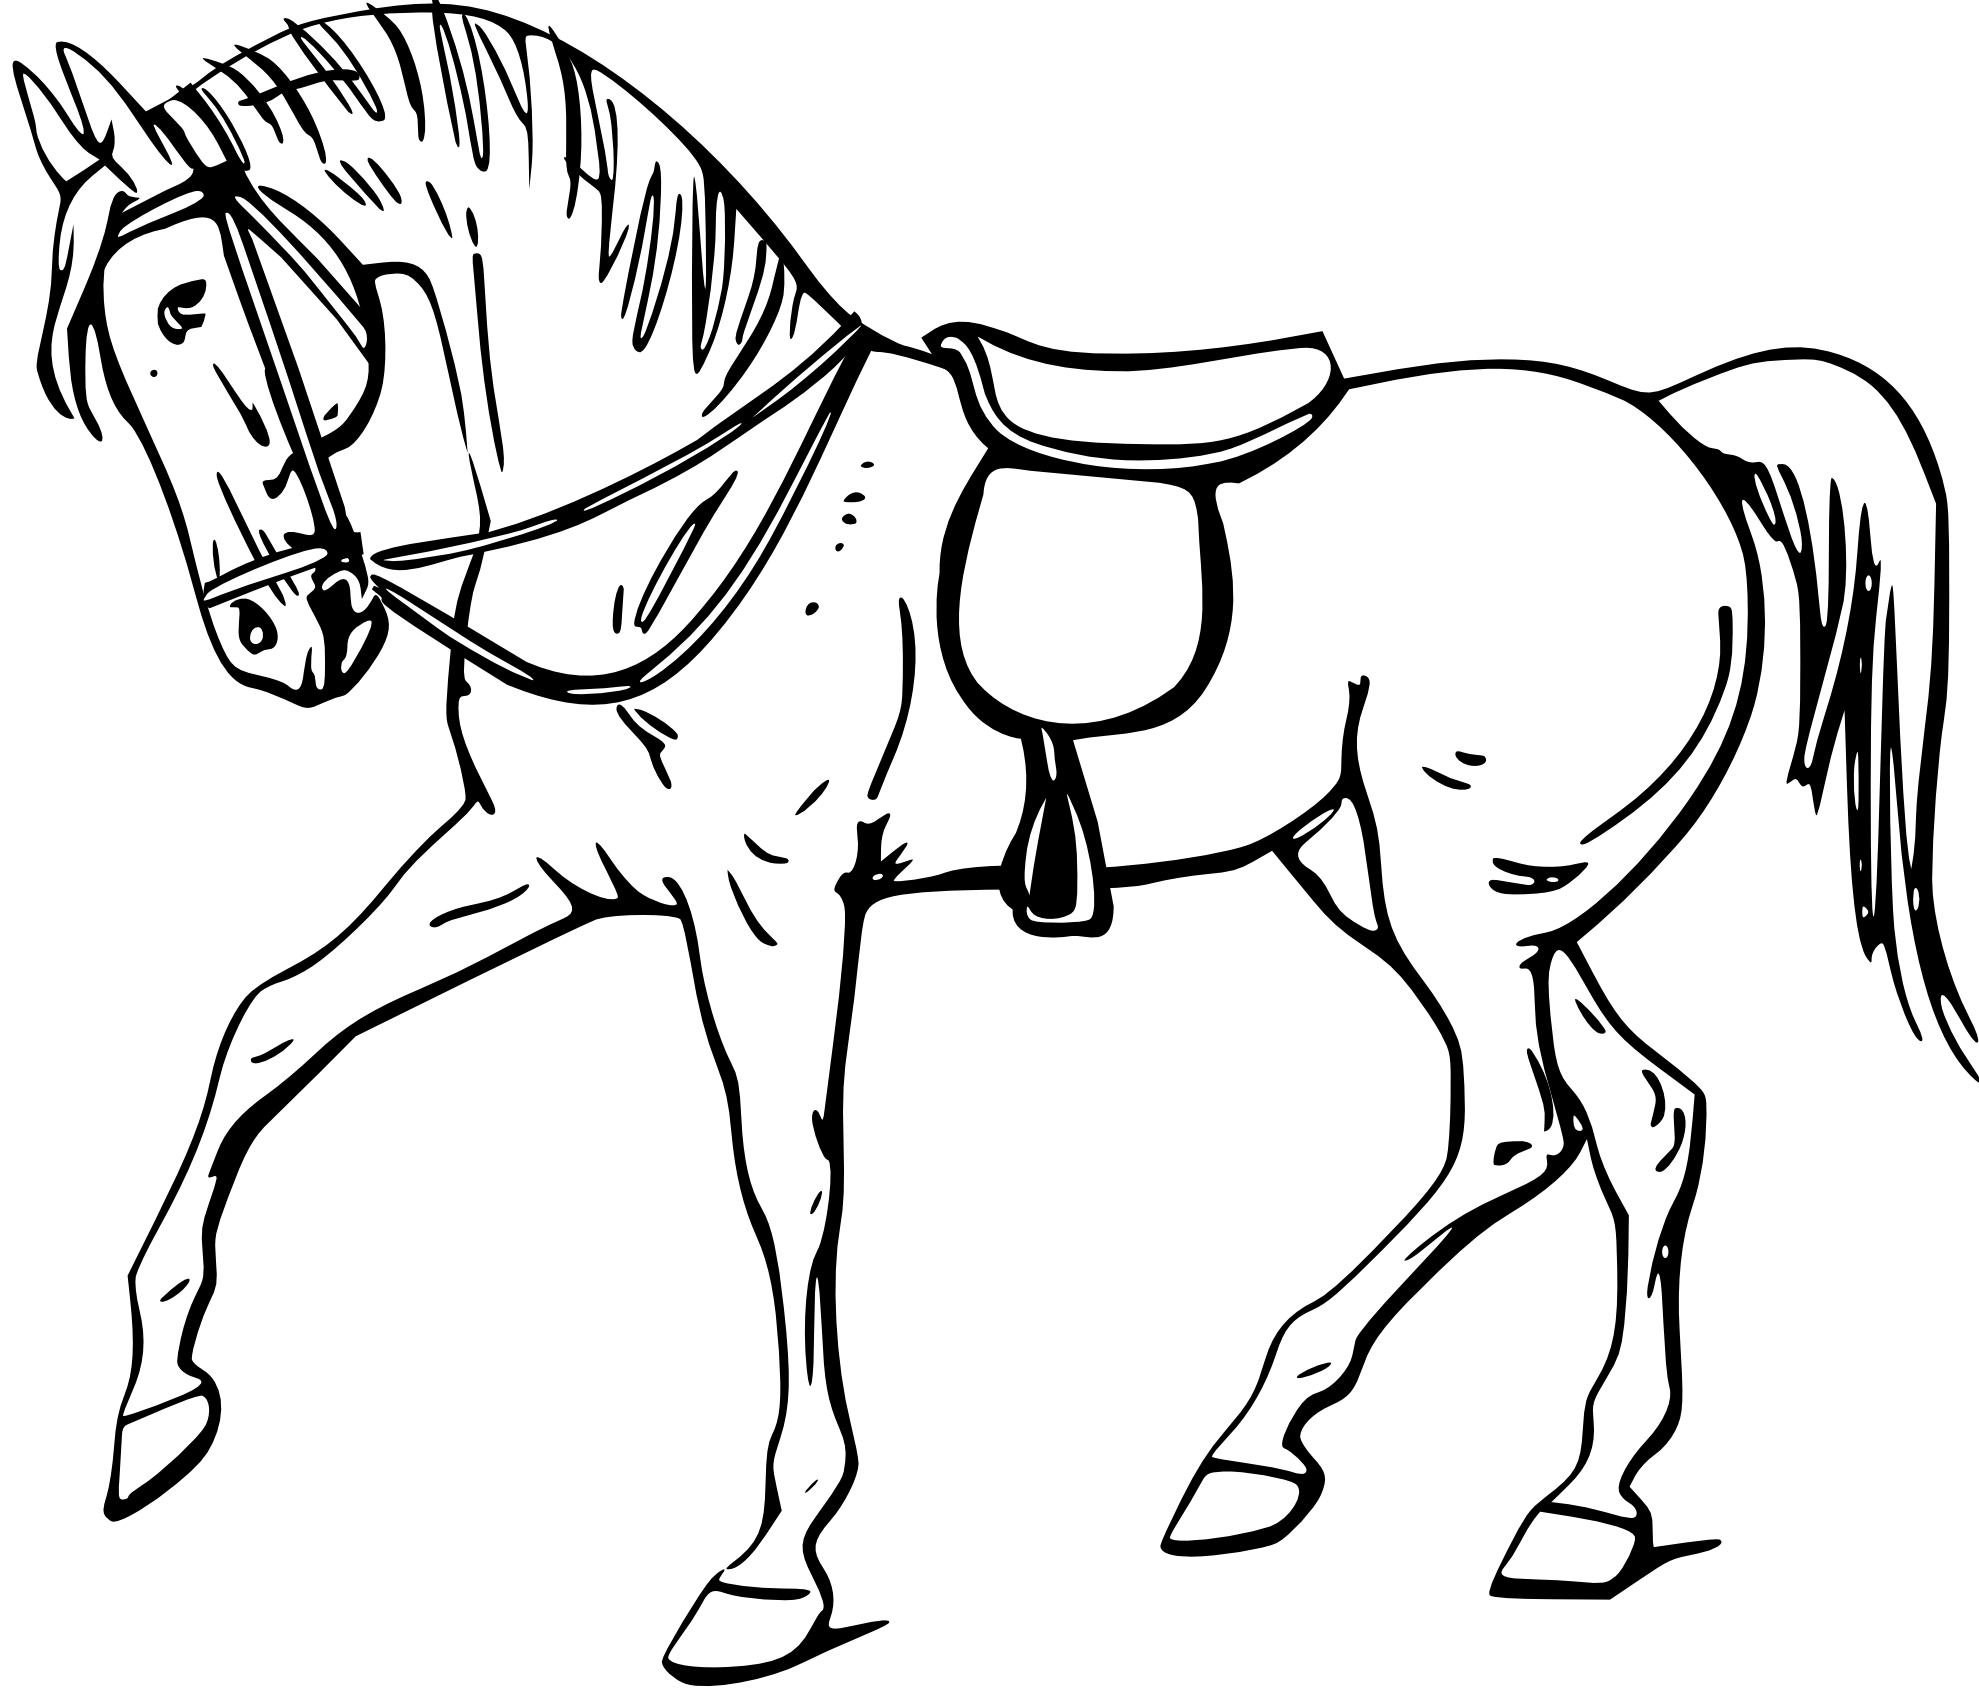 Horse clipart black and white head.